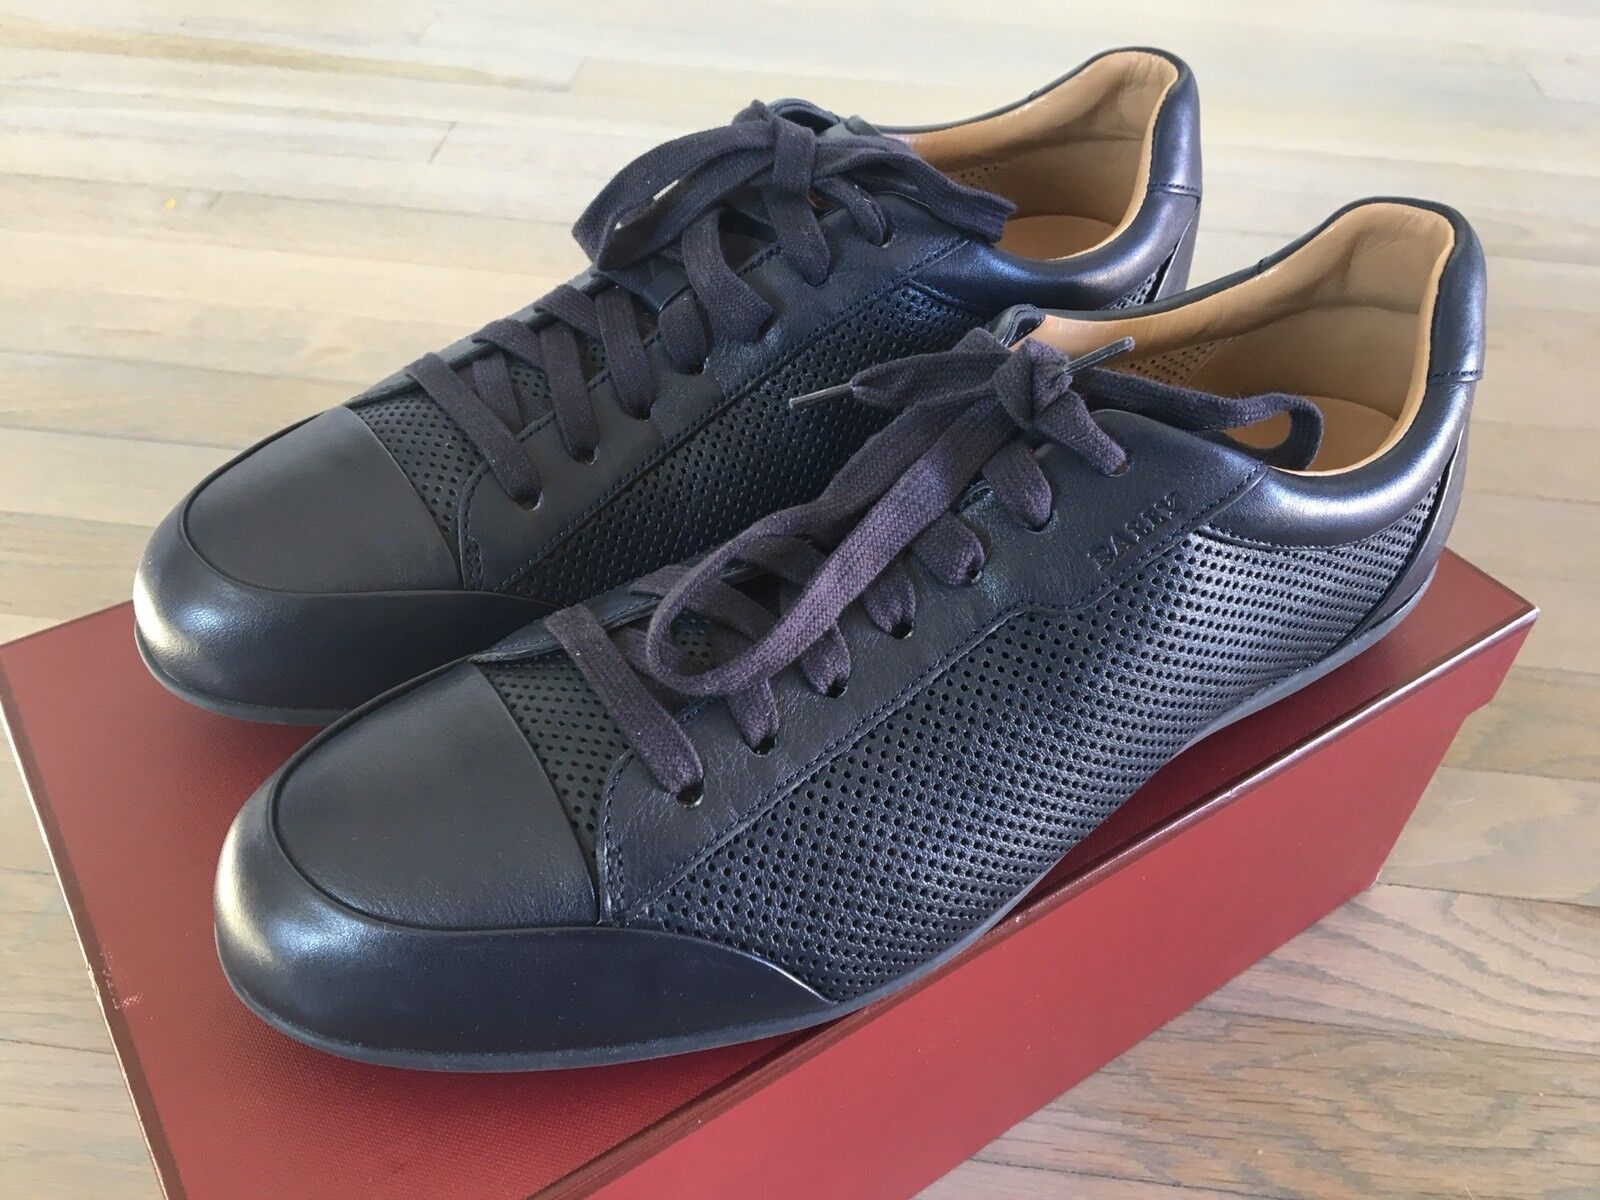 Scarpe casual da uomo  600$ Bally Navy Blue Hayo Perforated Leather Sneakers size US 12